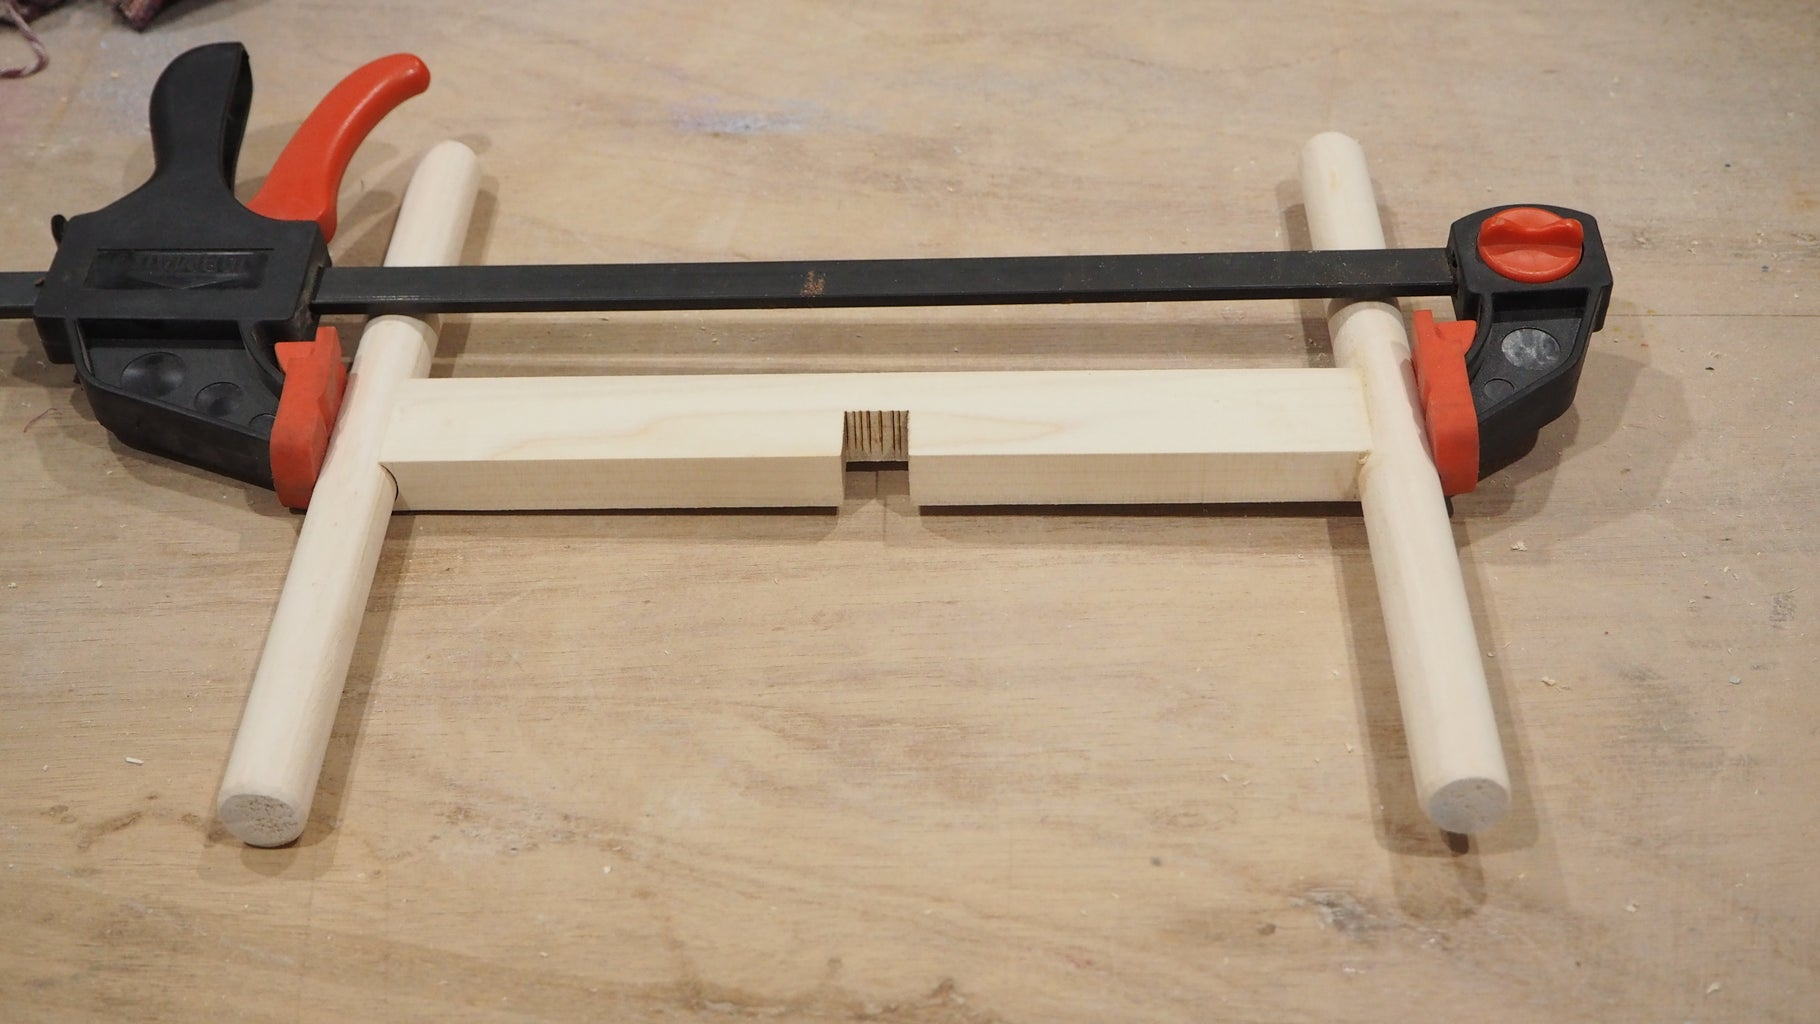 Assemble With Dowel Pins